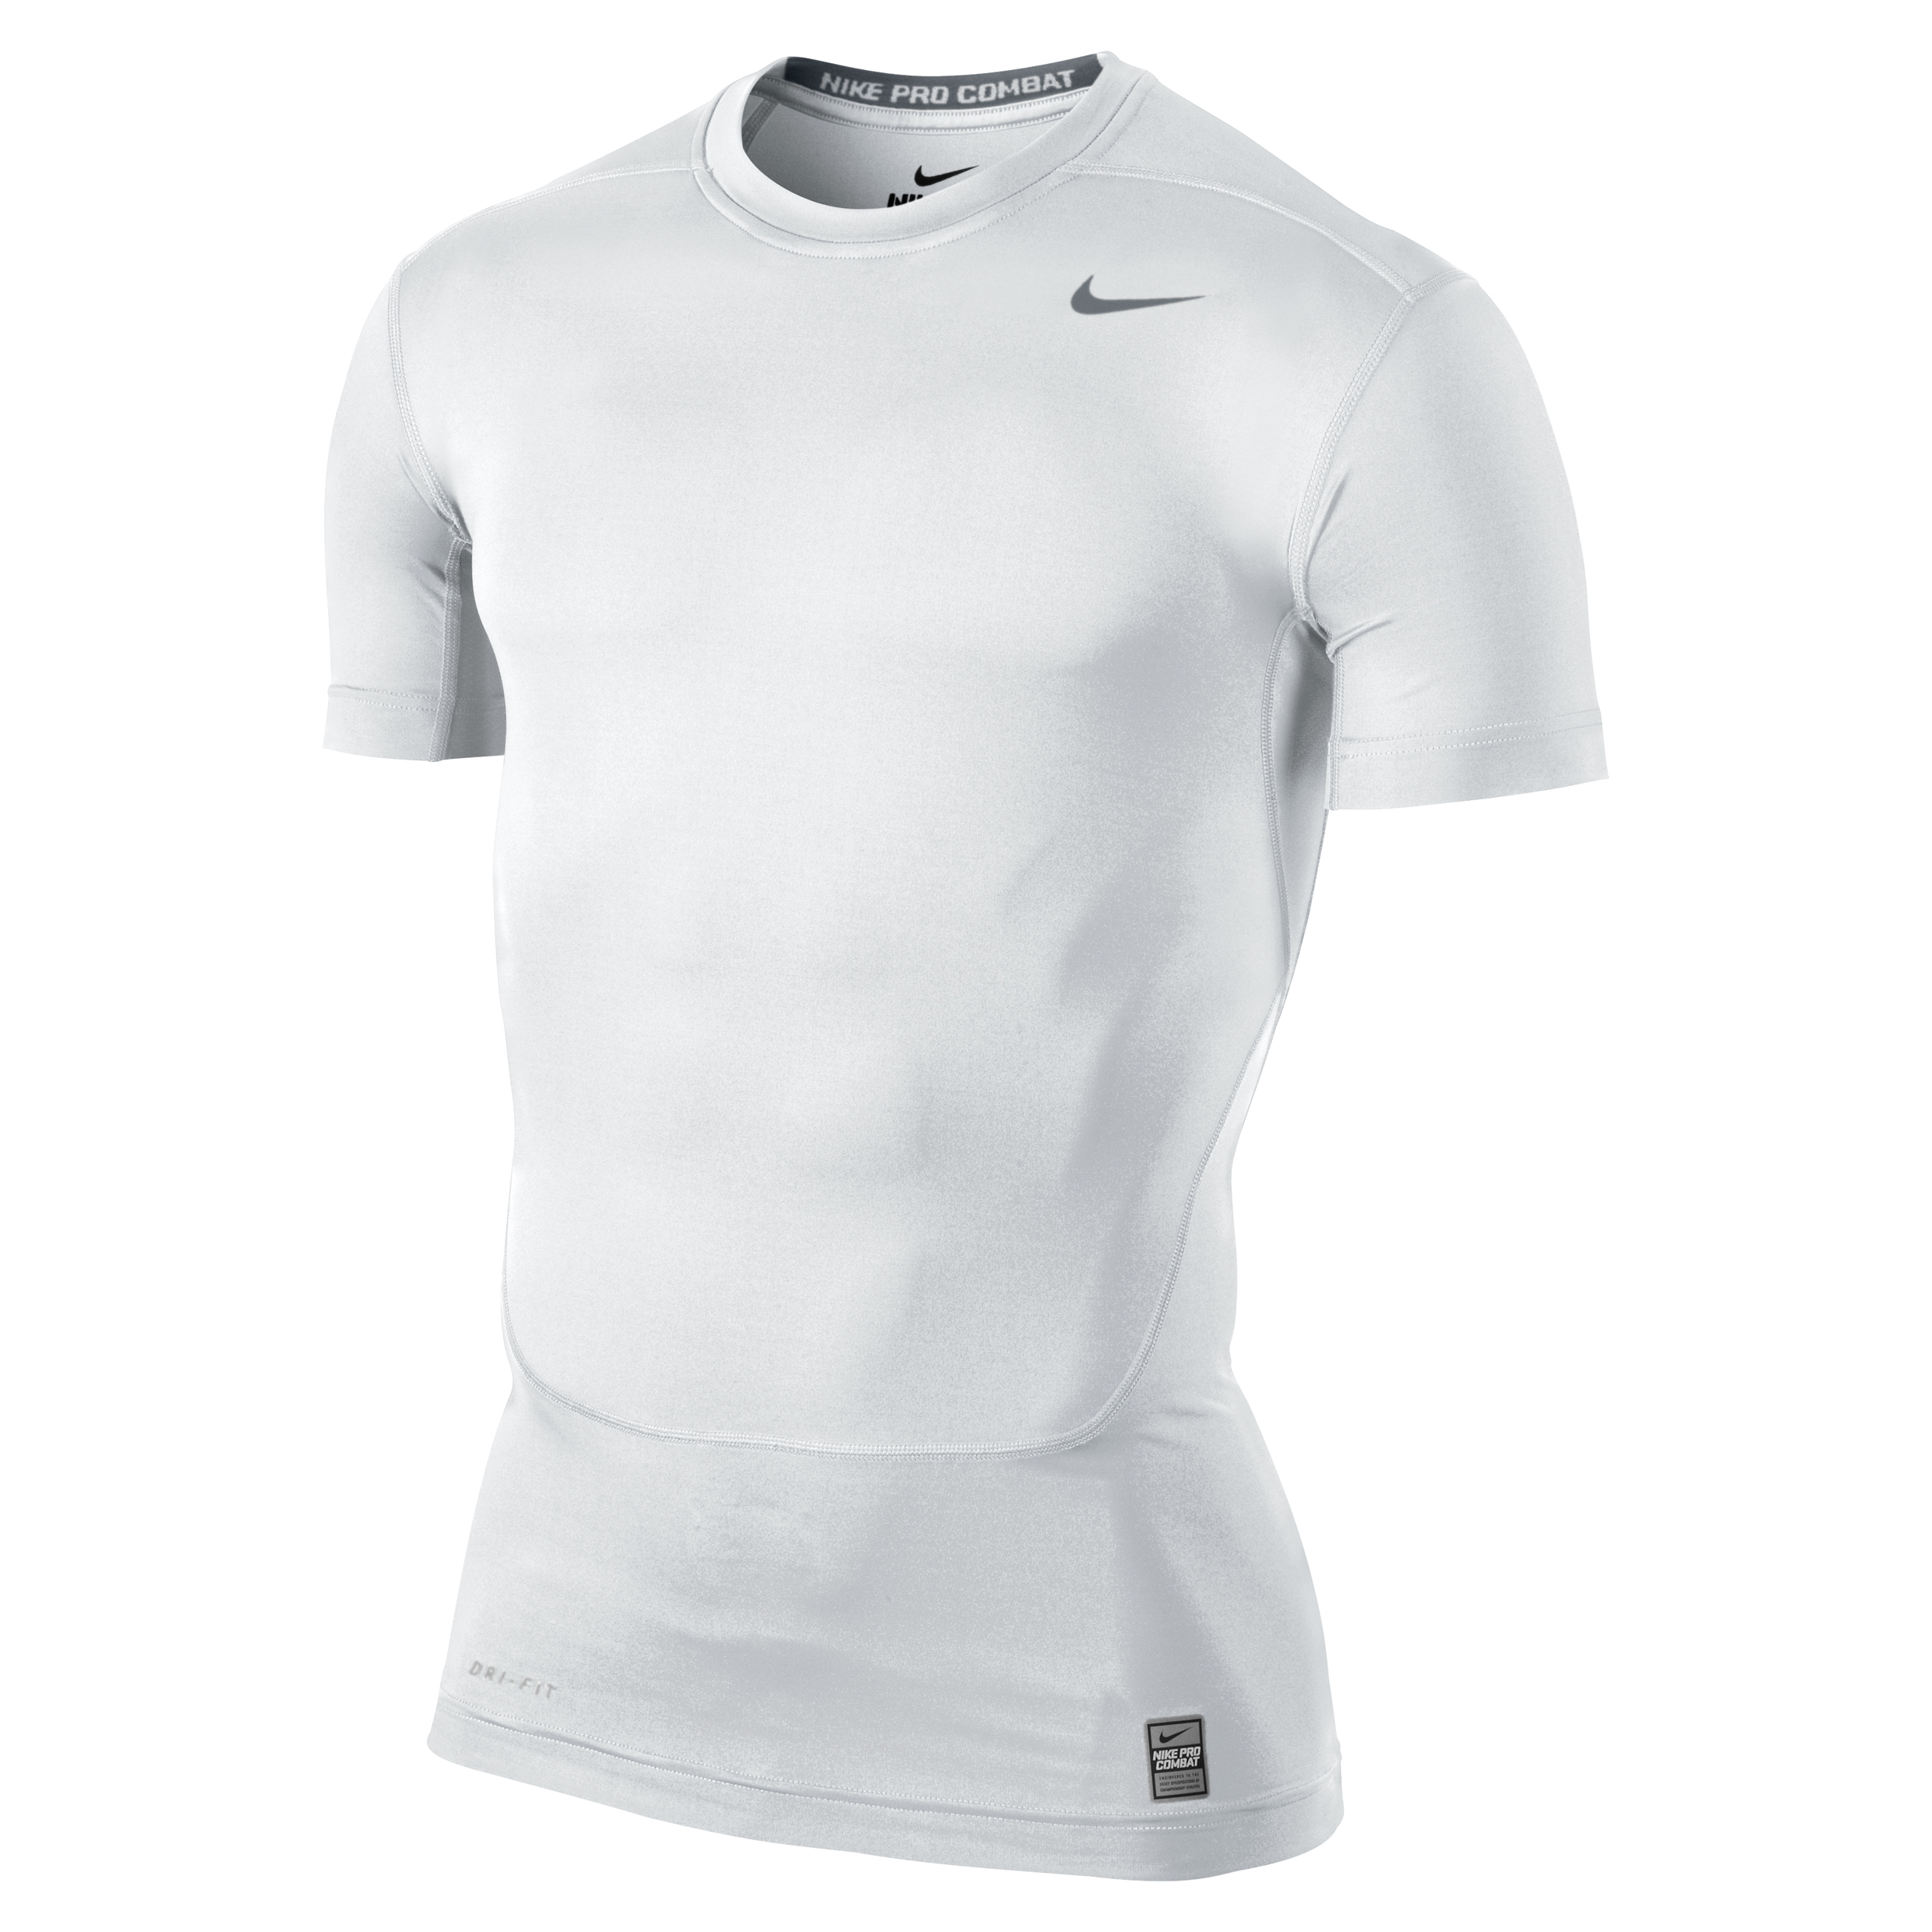 Nike Pro Combat Core Base Layer Top White